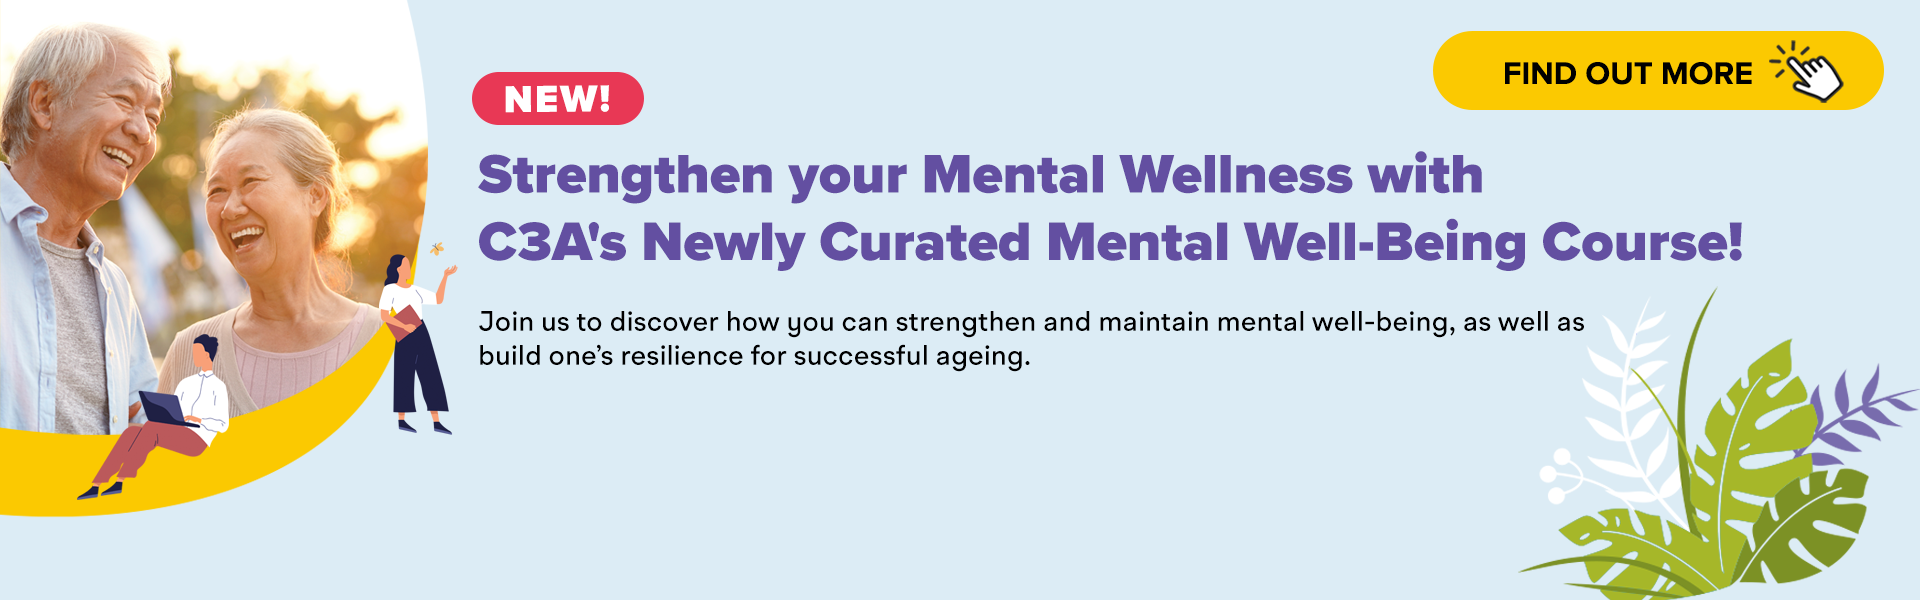 Strengthen Your Mental Strength with C3A's Newly Curated Mental Well-being Course!